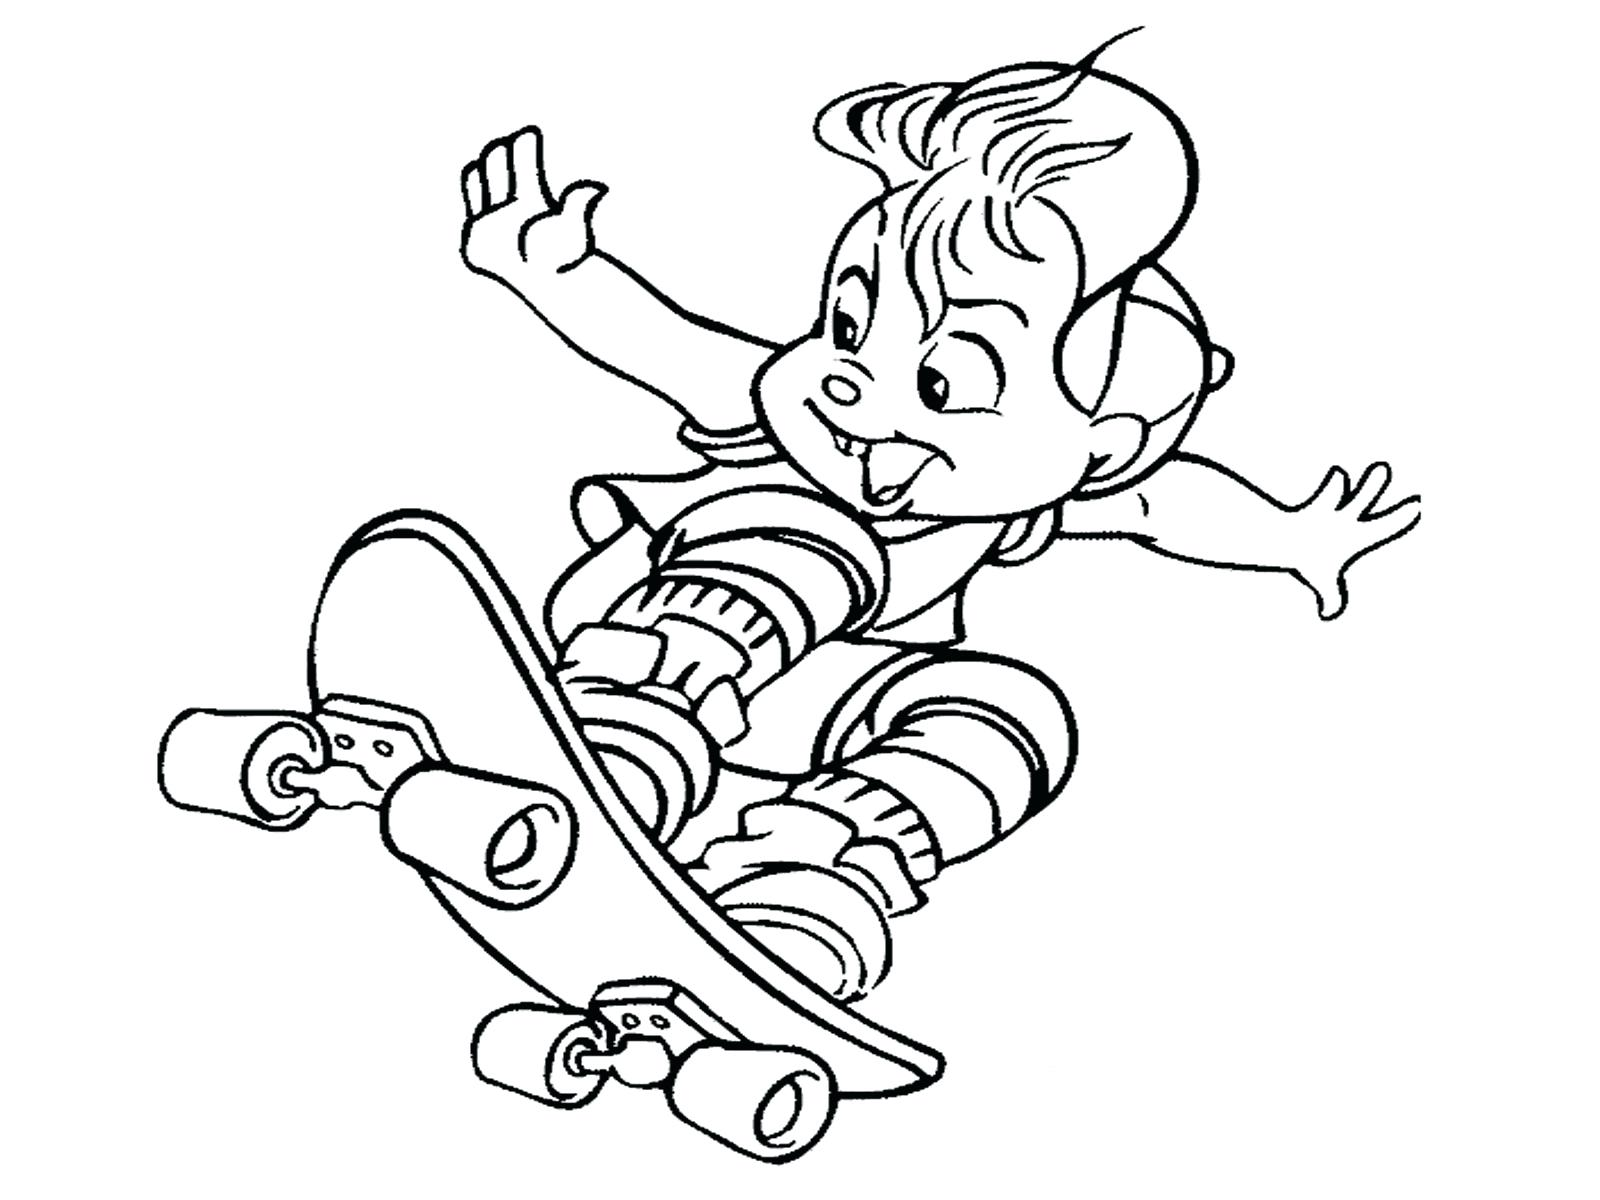 1600x1200 Coloring Page Skateboard Coloring Pages Skateboard Ramp Coloring